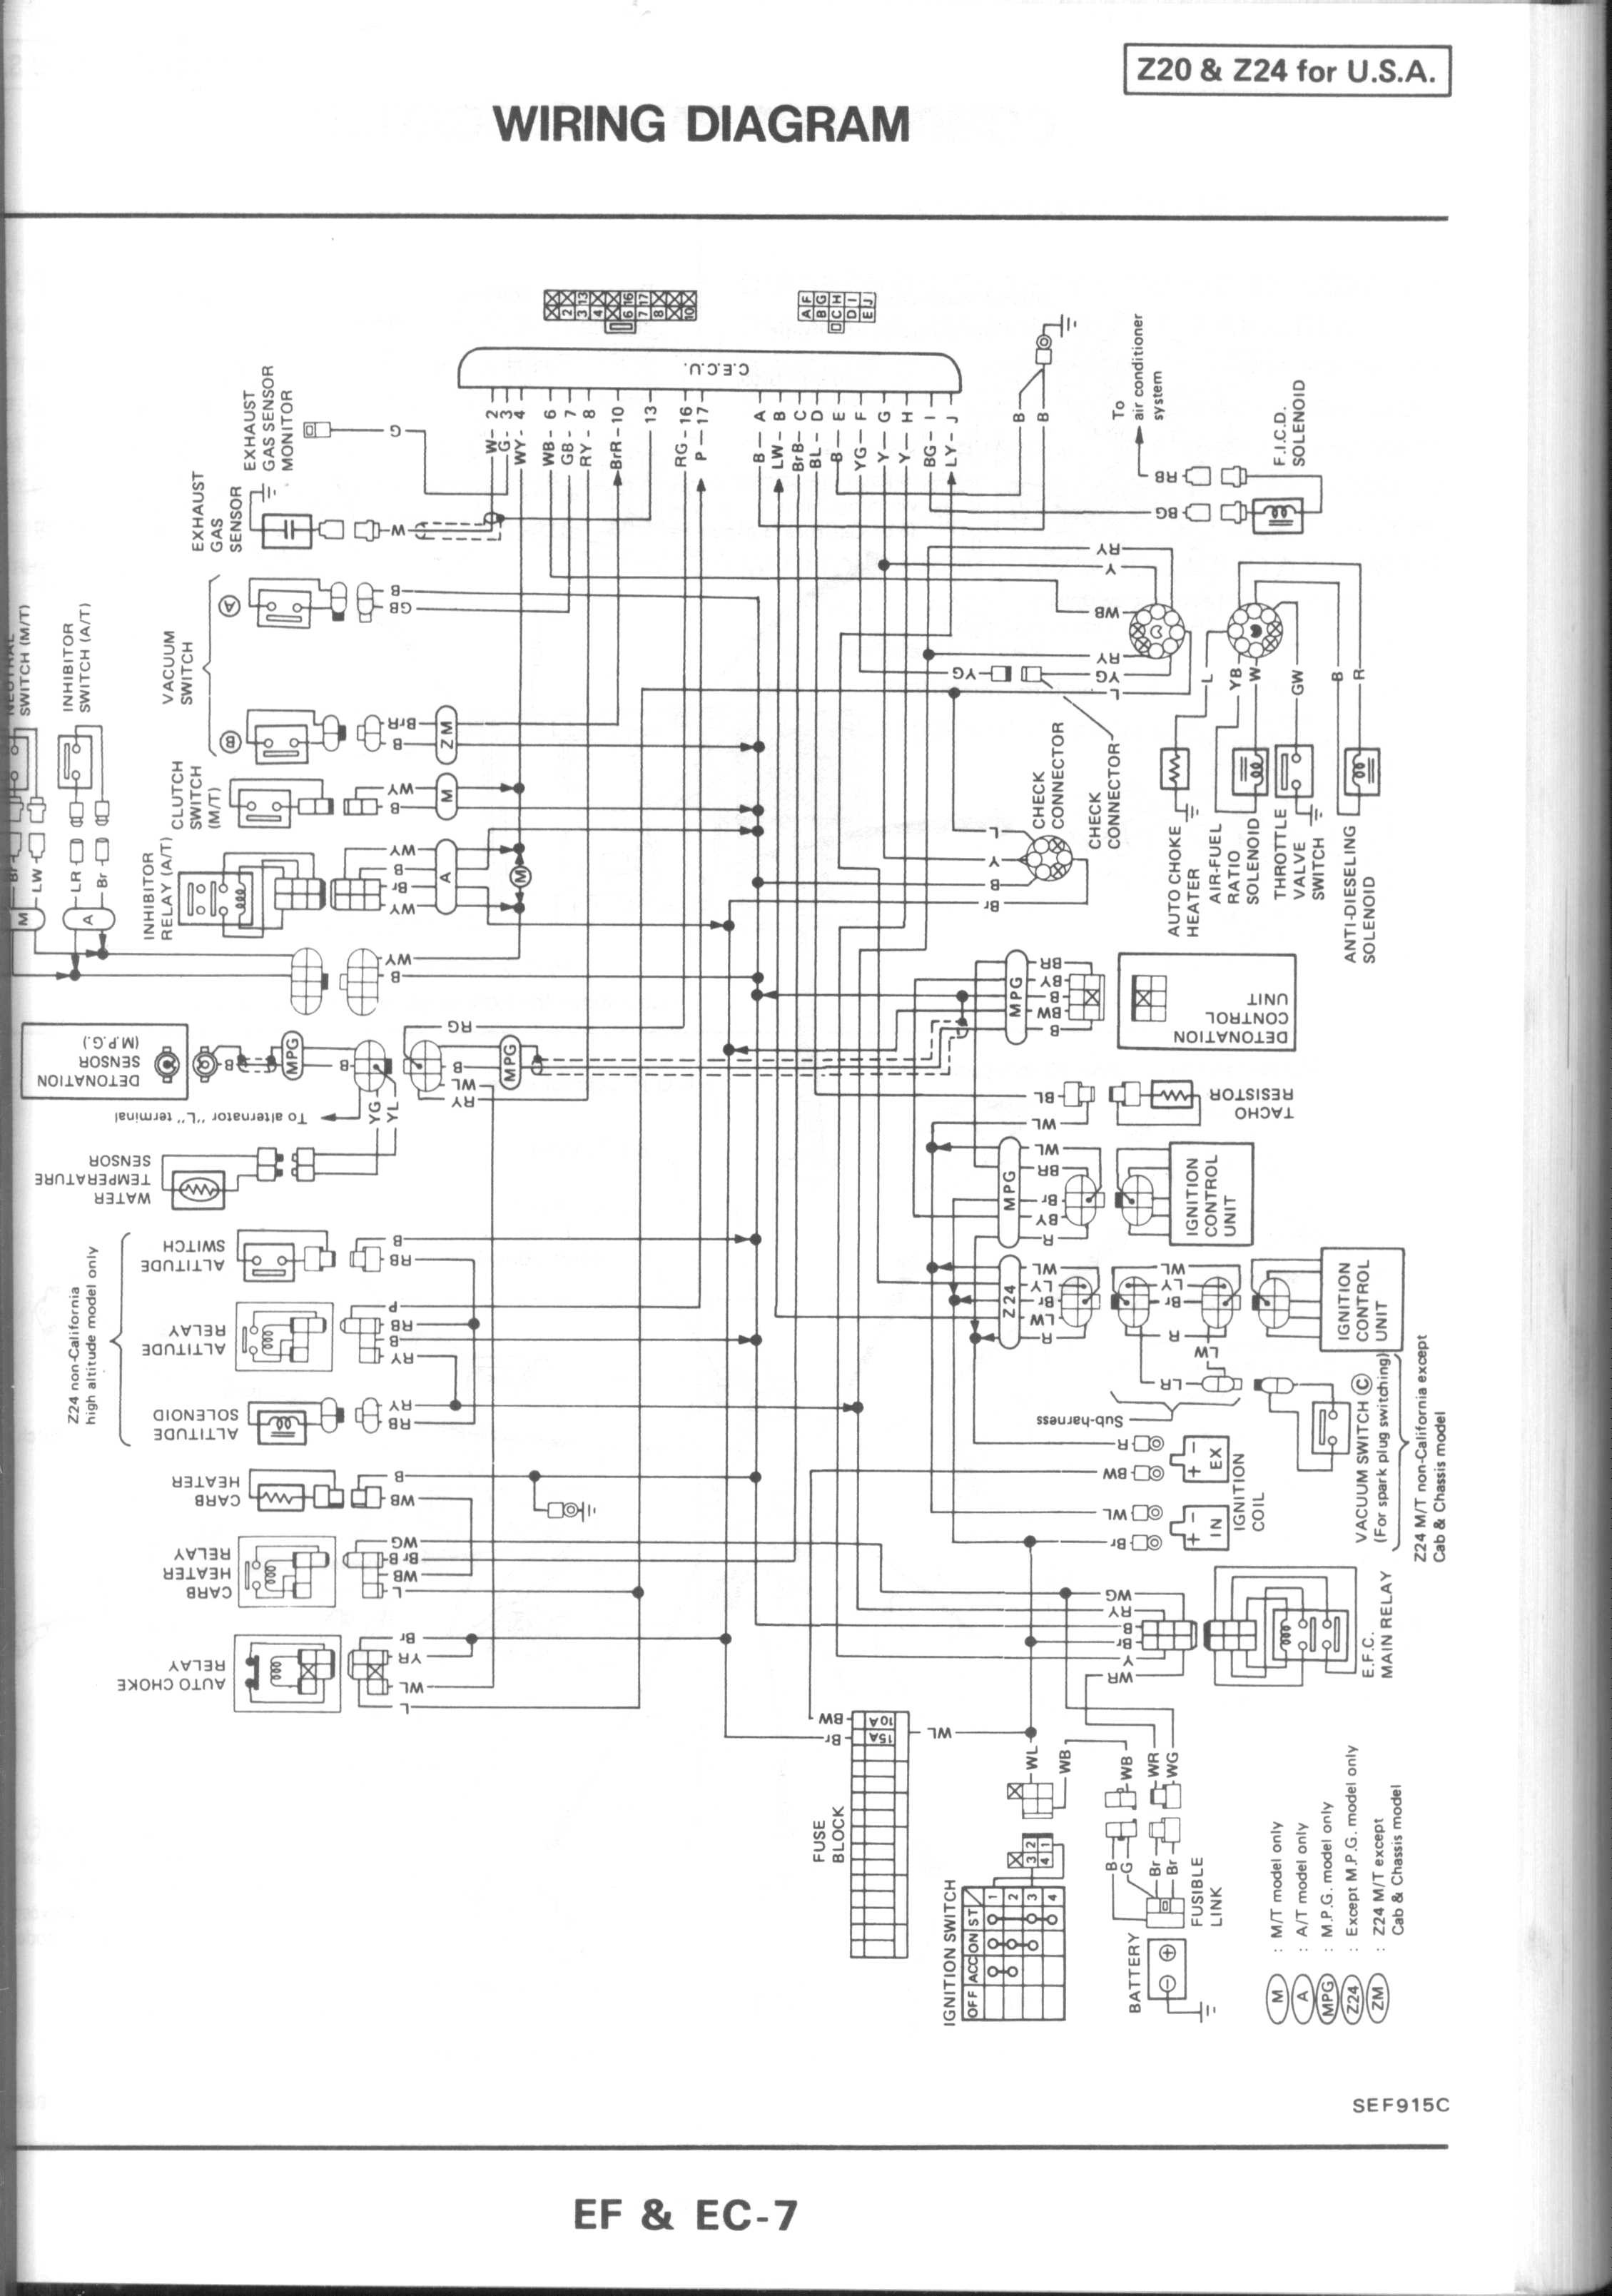 🏆 [DIAGRAM in Pictures Database] Jeep Comanche Fuel Gauge Wiring Diagram  Just Download or Read Wiring Diagram - MATHEMATICAL-DIAGRAMS.ONYXUM.COMComplete Diagram Picture Database - Onyxum.com